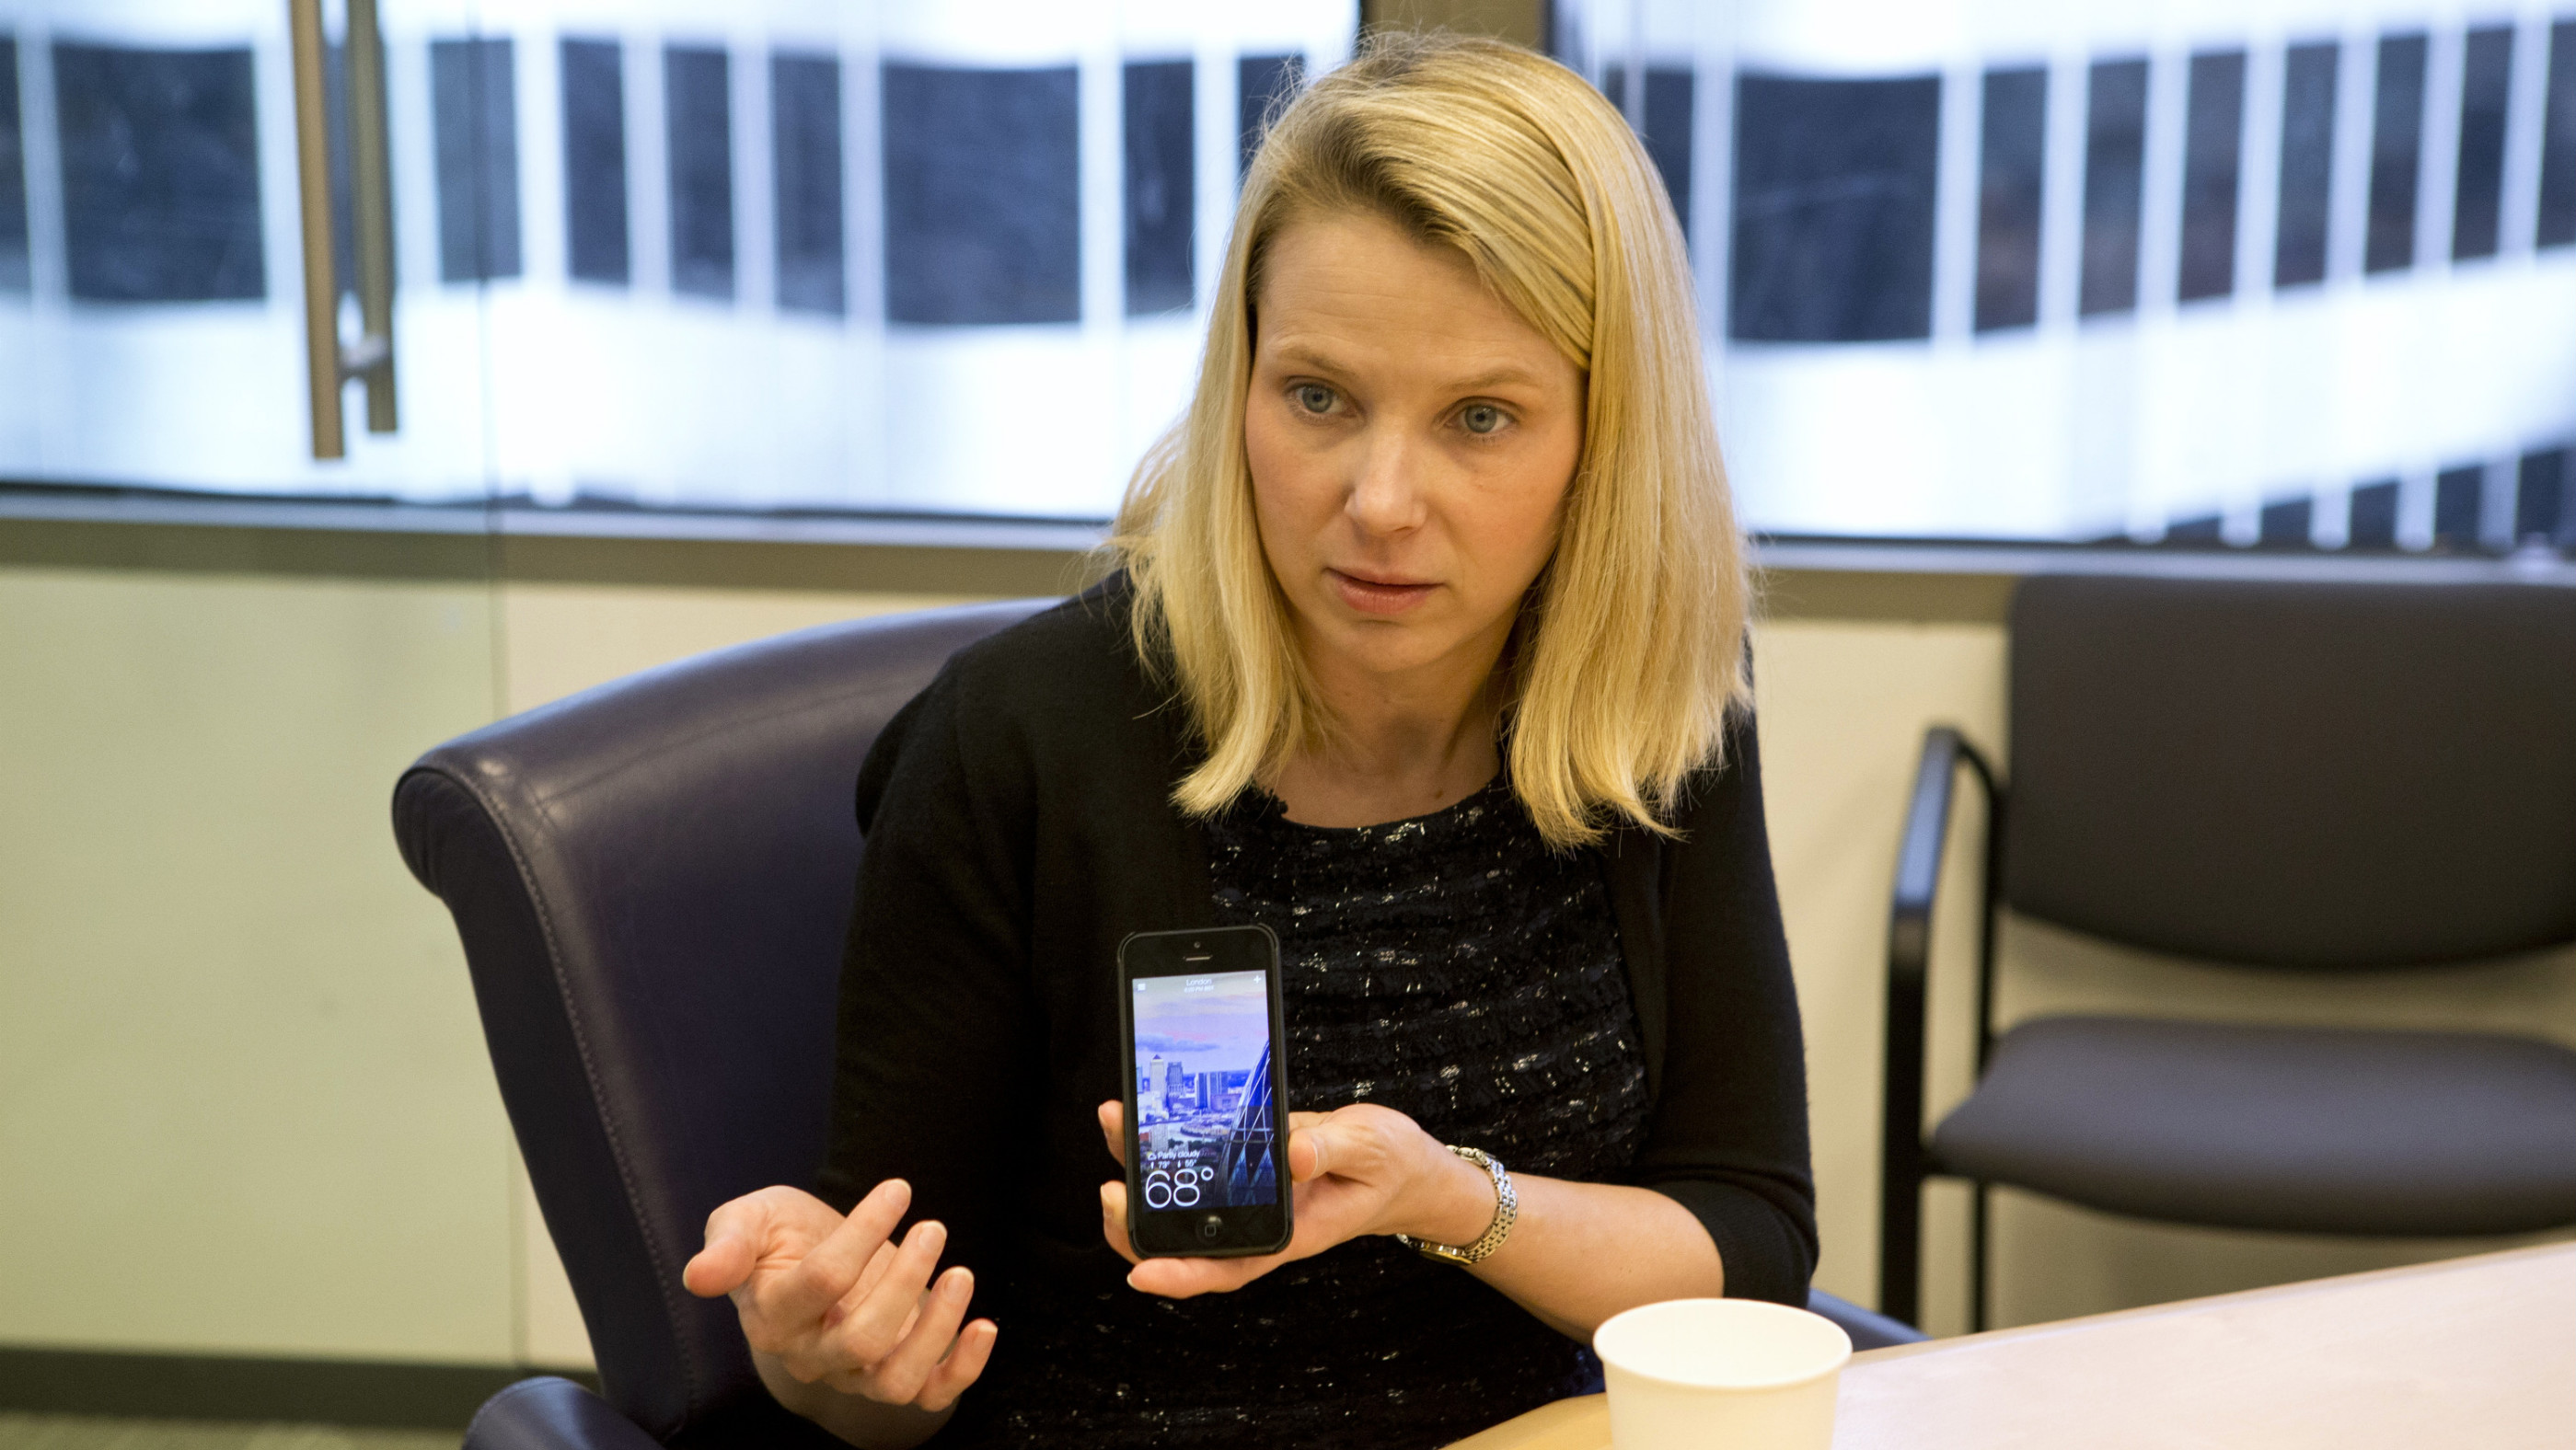 Marissa Mayer with iPhone